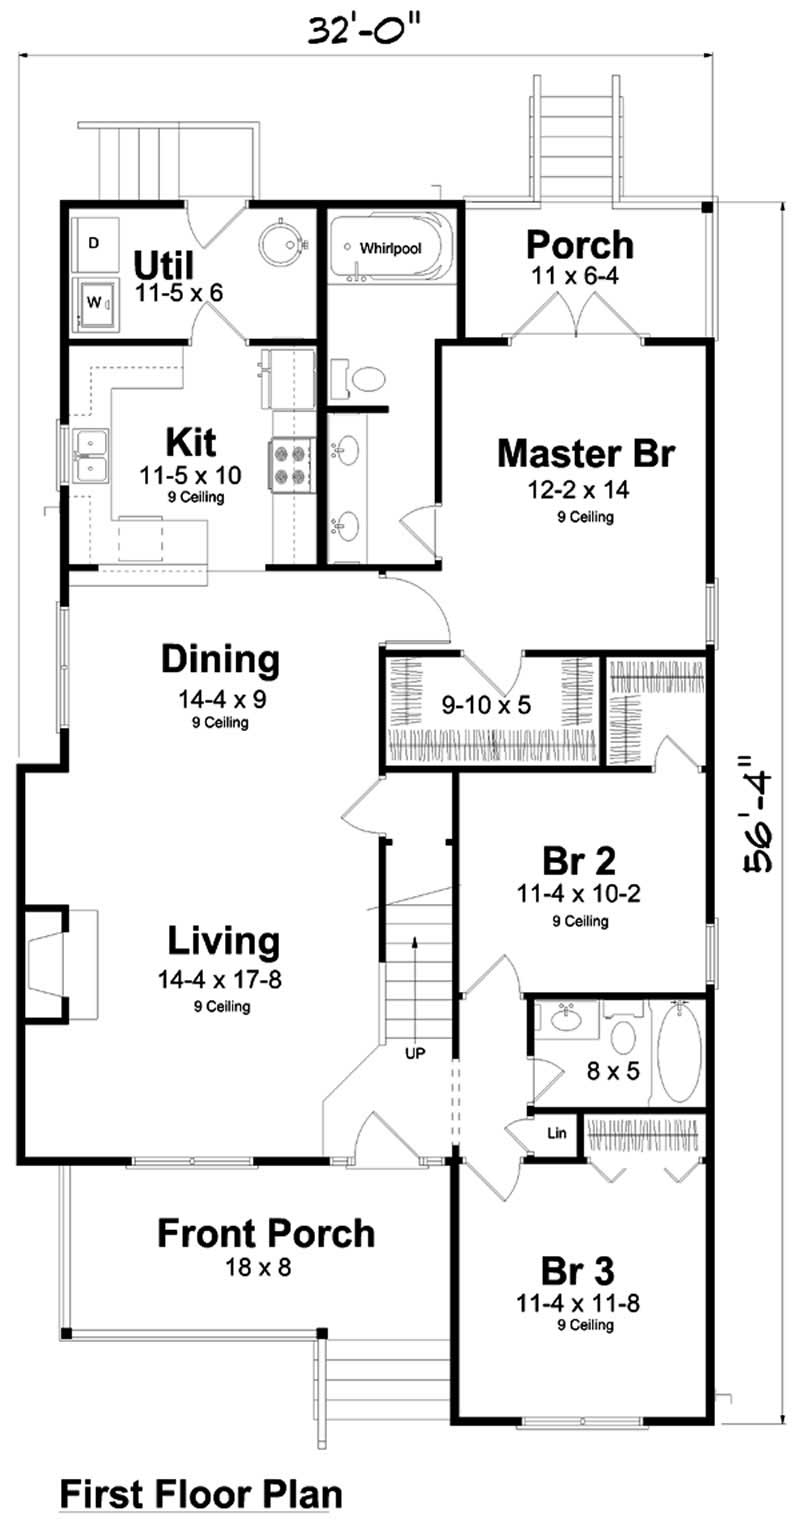 house plan GAR-74002 first floor